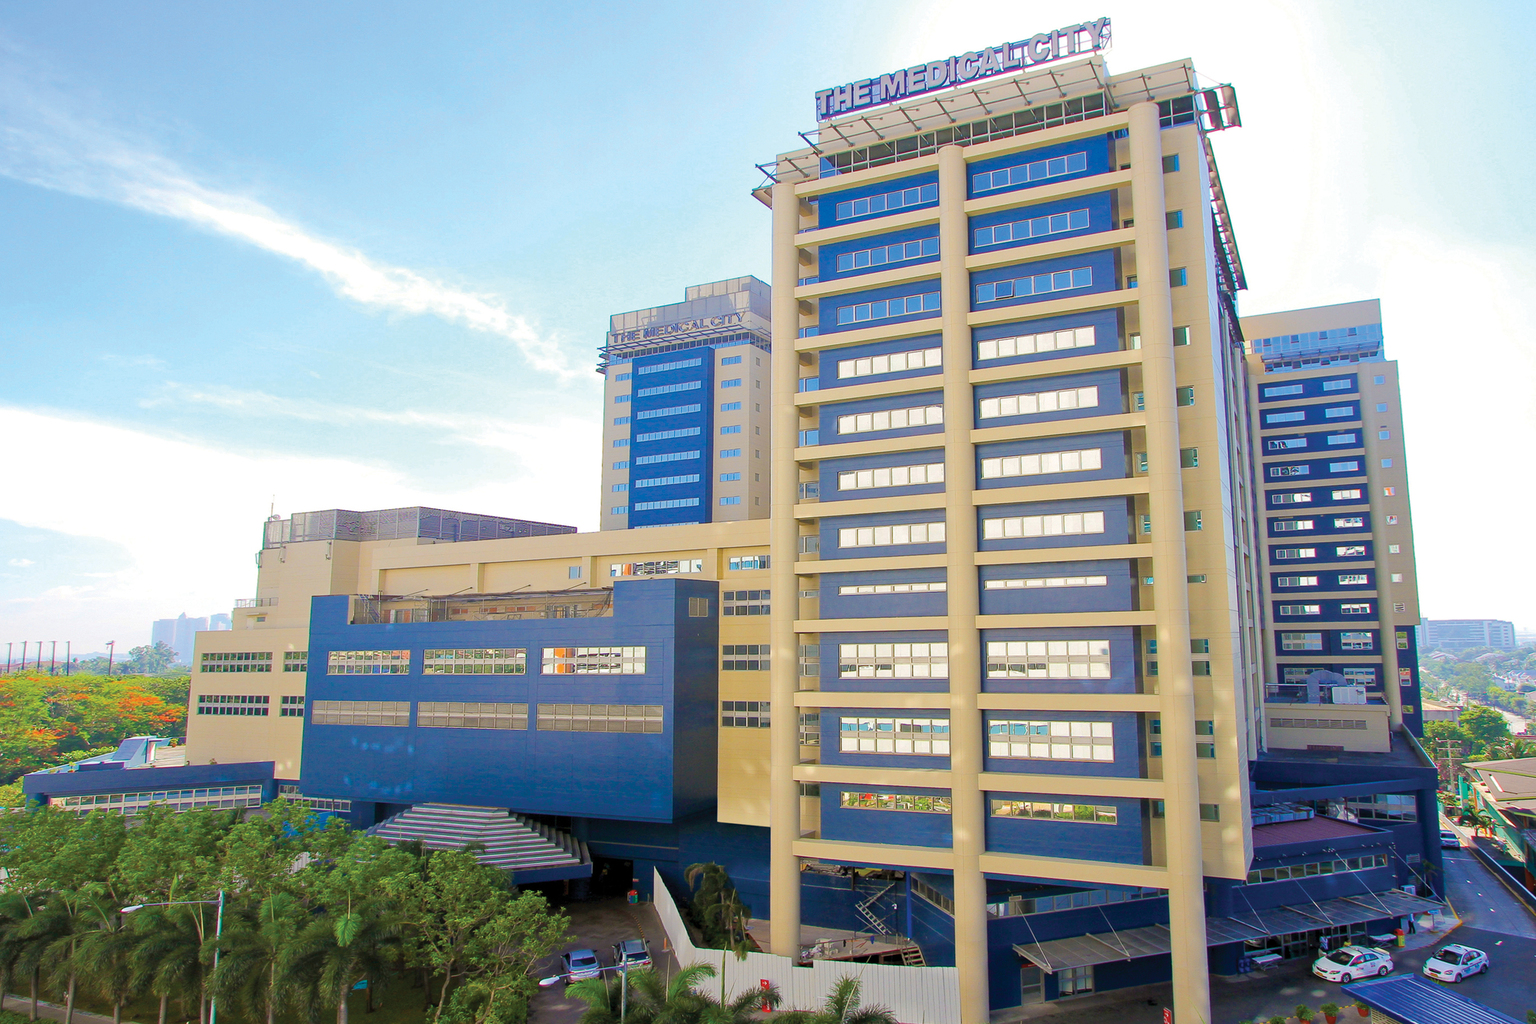 UpToDate supports clinical effectiveness at The Medical City